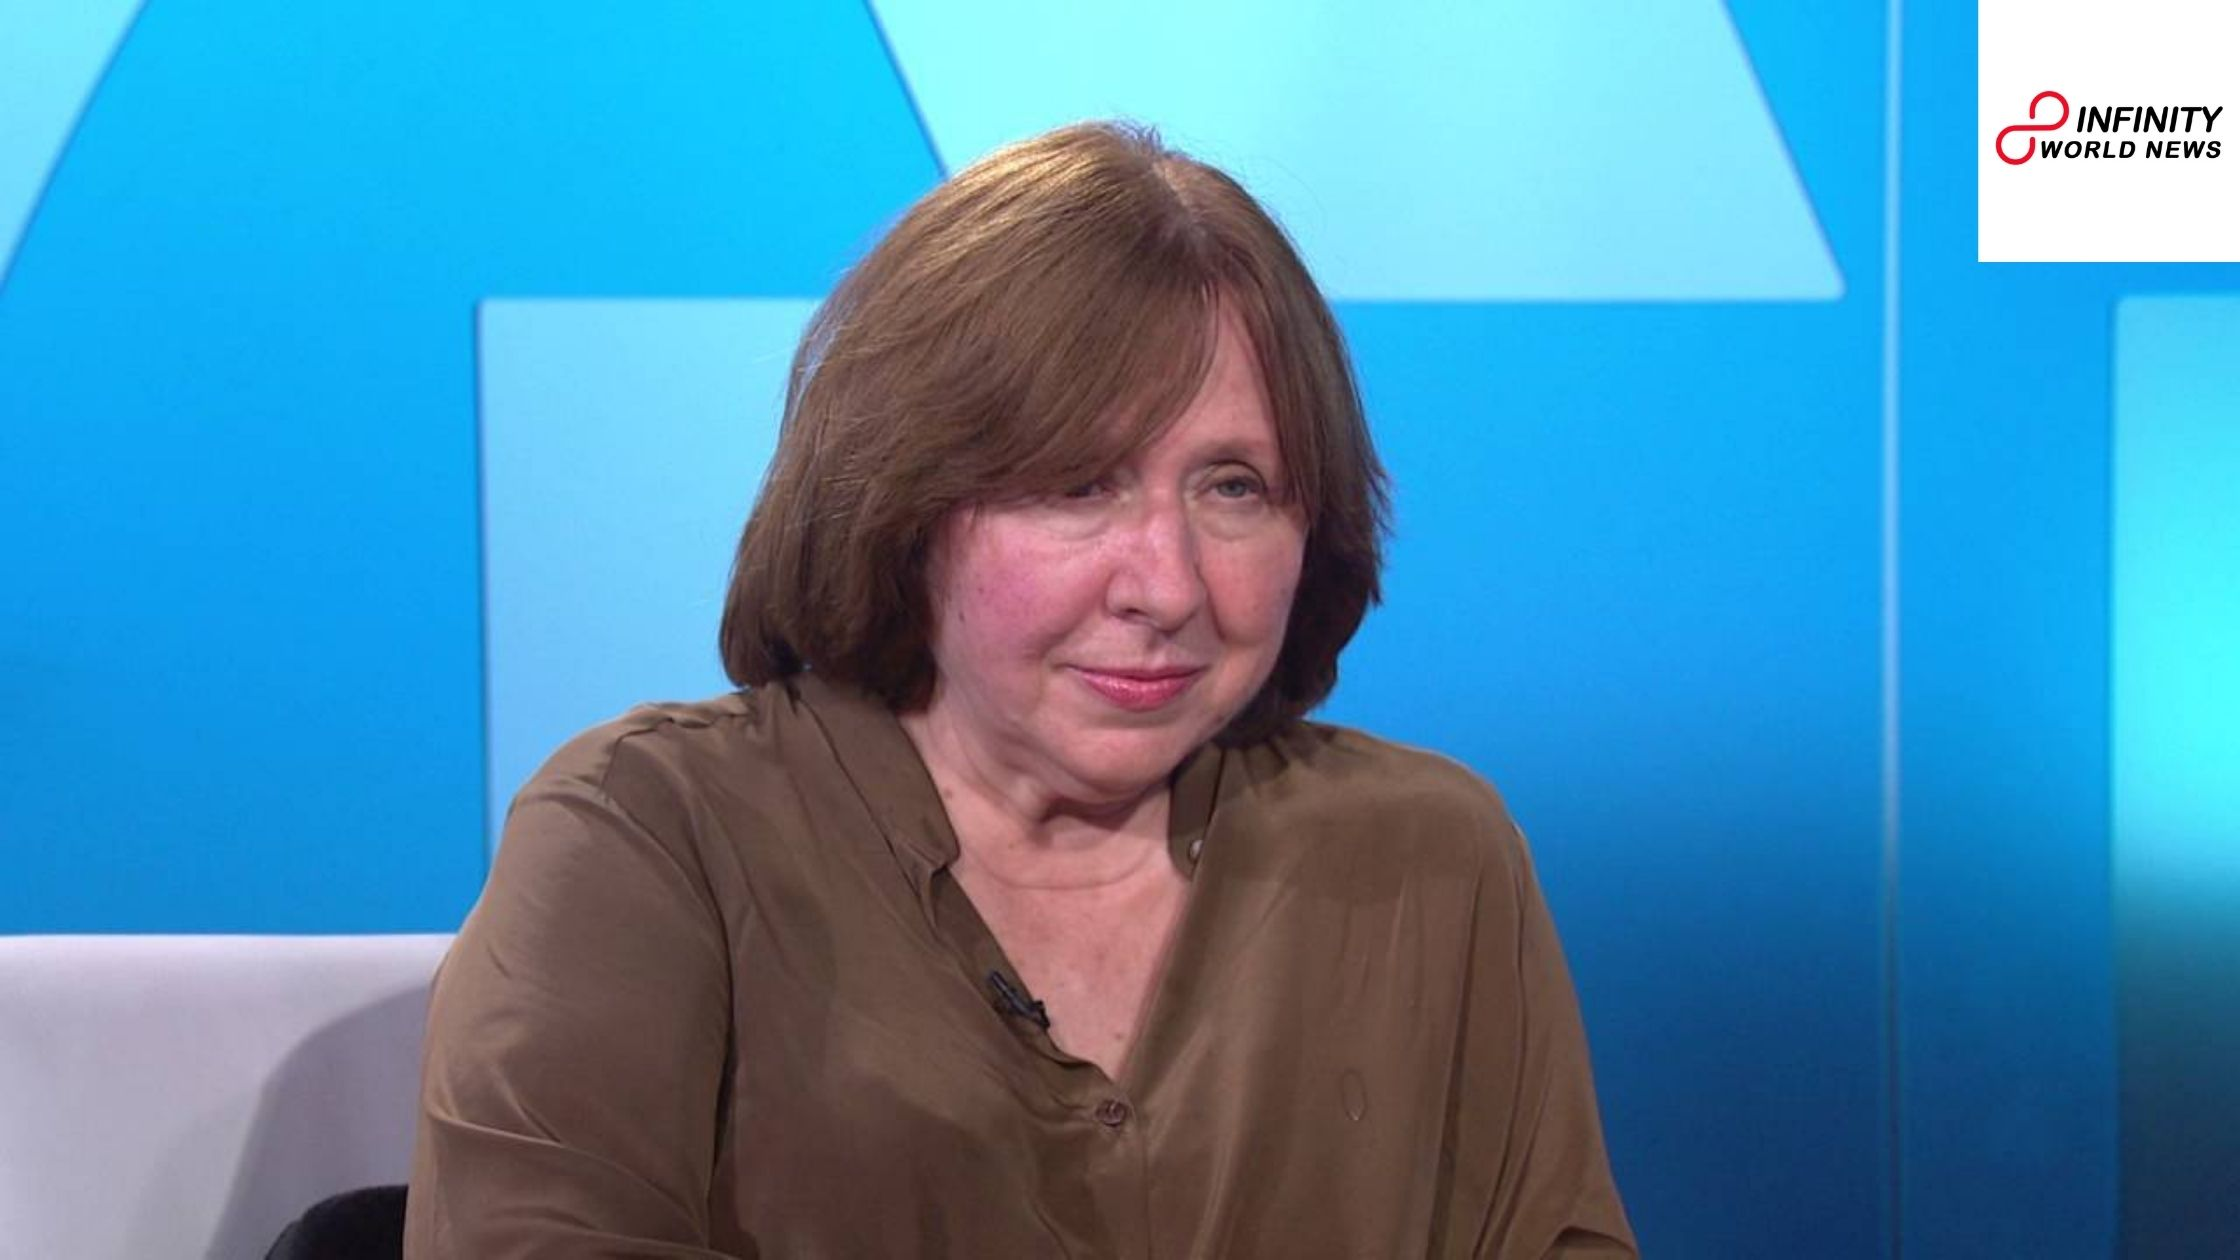 Belarus_ Nobel Laureate Alexievich visited by negotiators amid 'provocation'